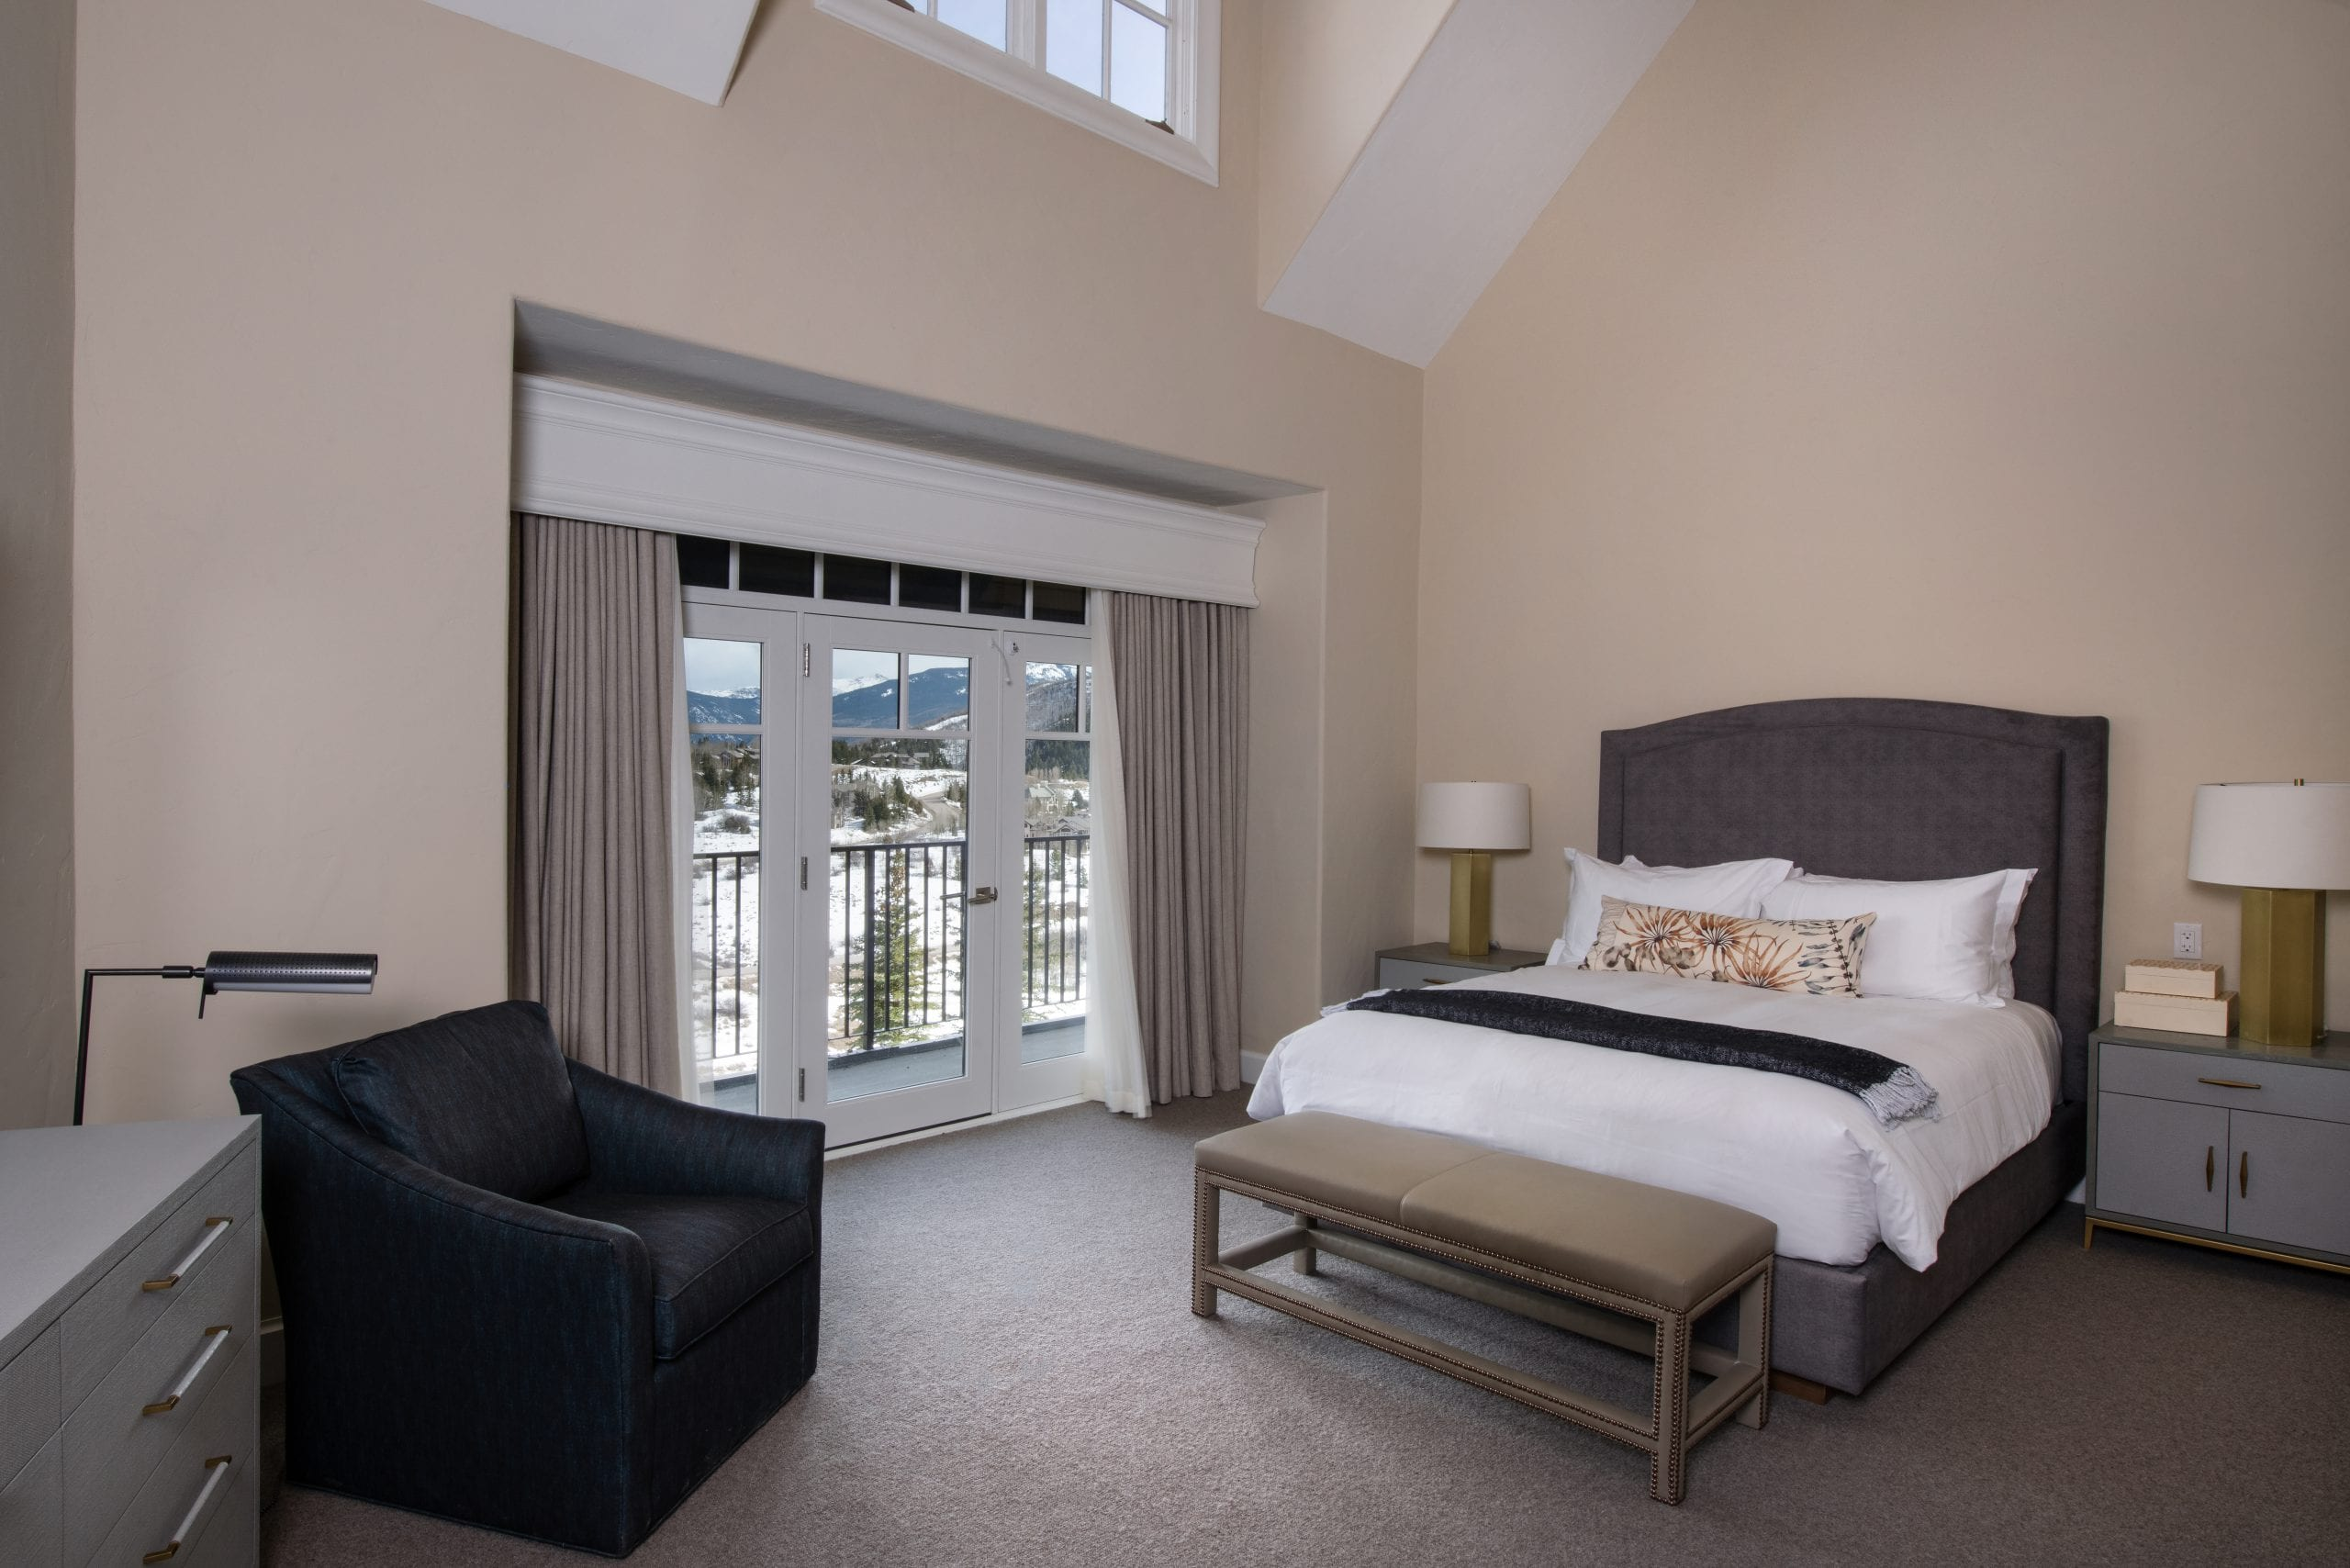 APN Semiprivate Suite Room View